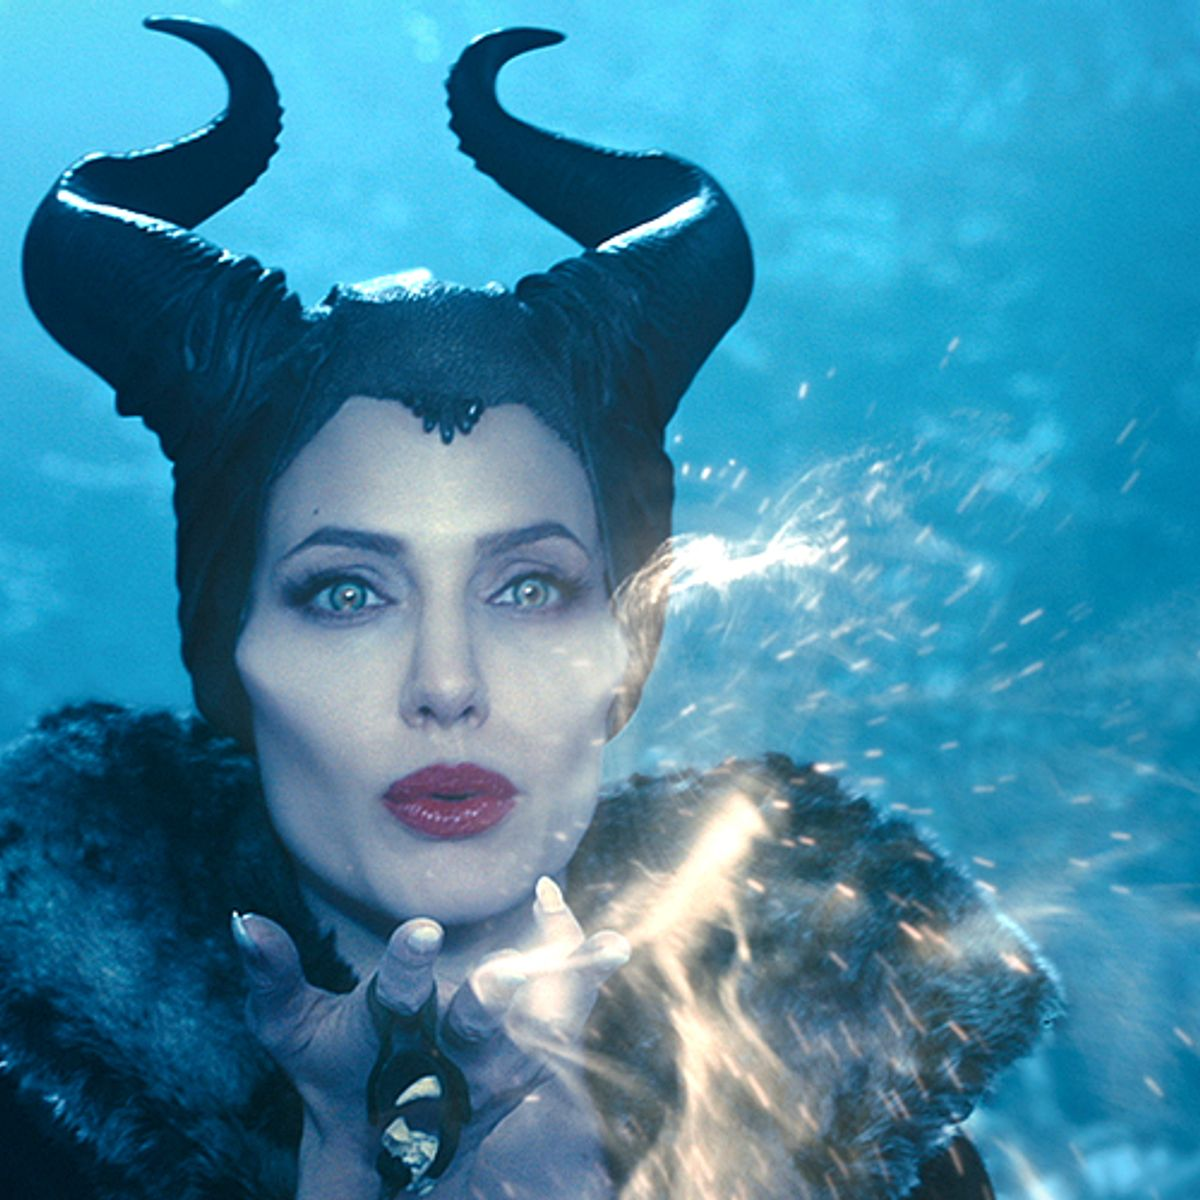 Maleficent A Reborn Angelina Jolie Is The Perfect Heroine